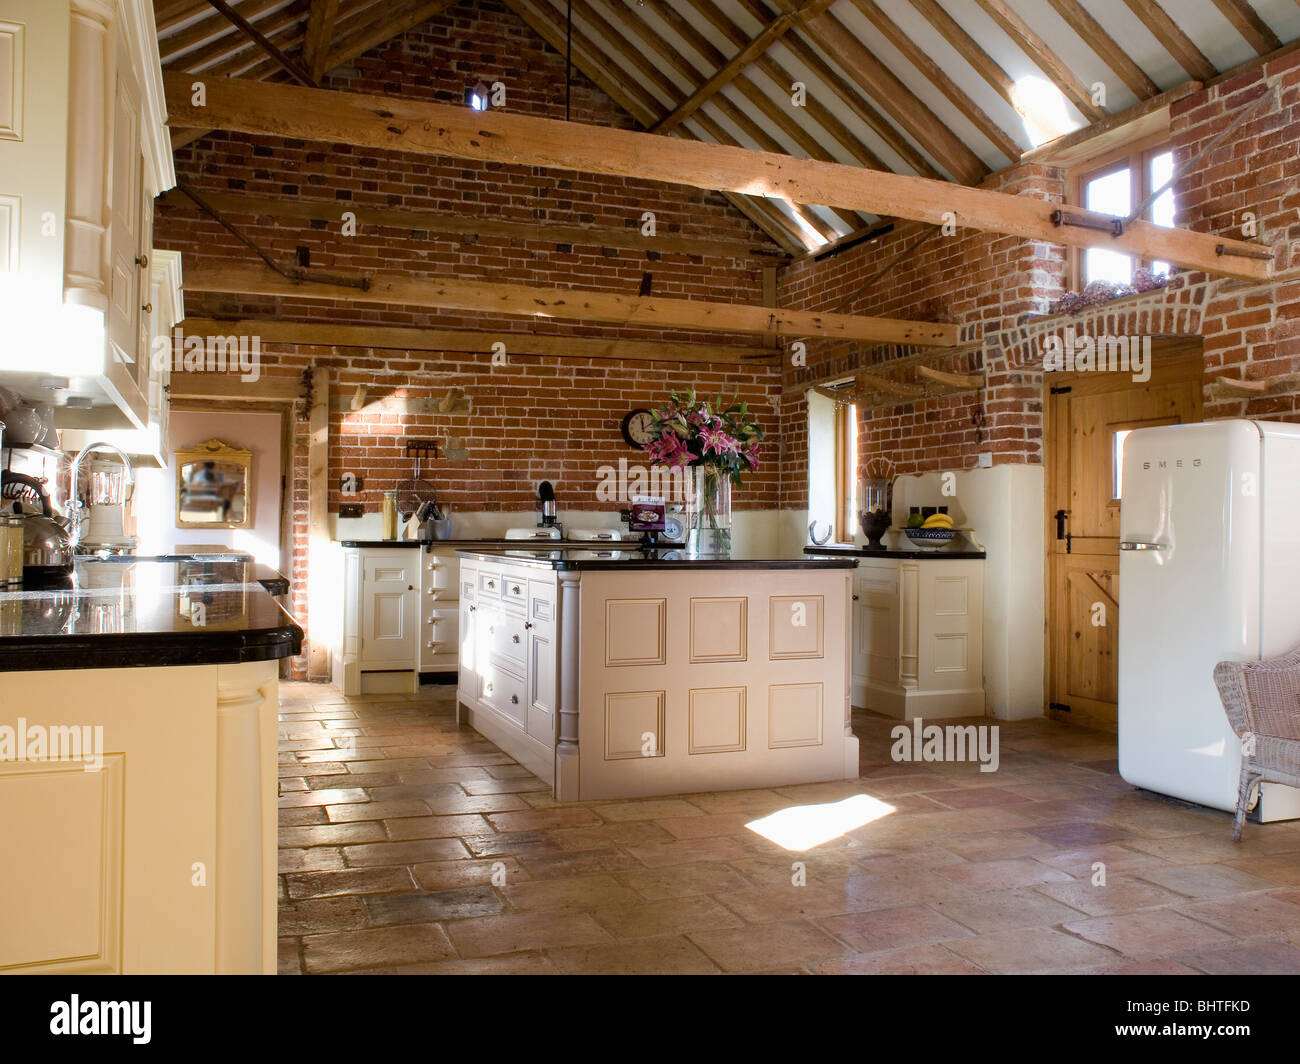 Kitchen Barn stone-flagged floor and island unit in large barn conversion